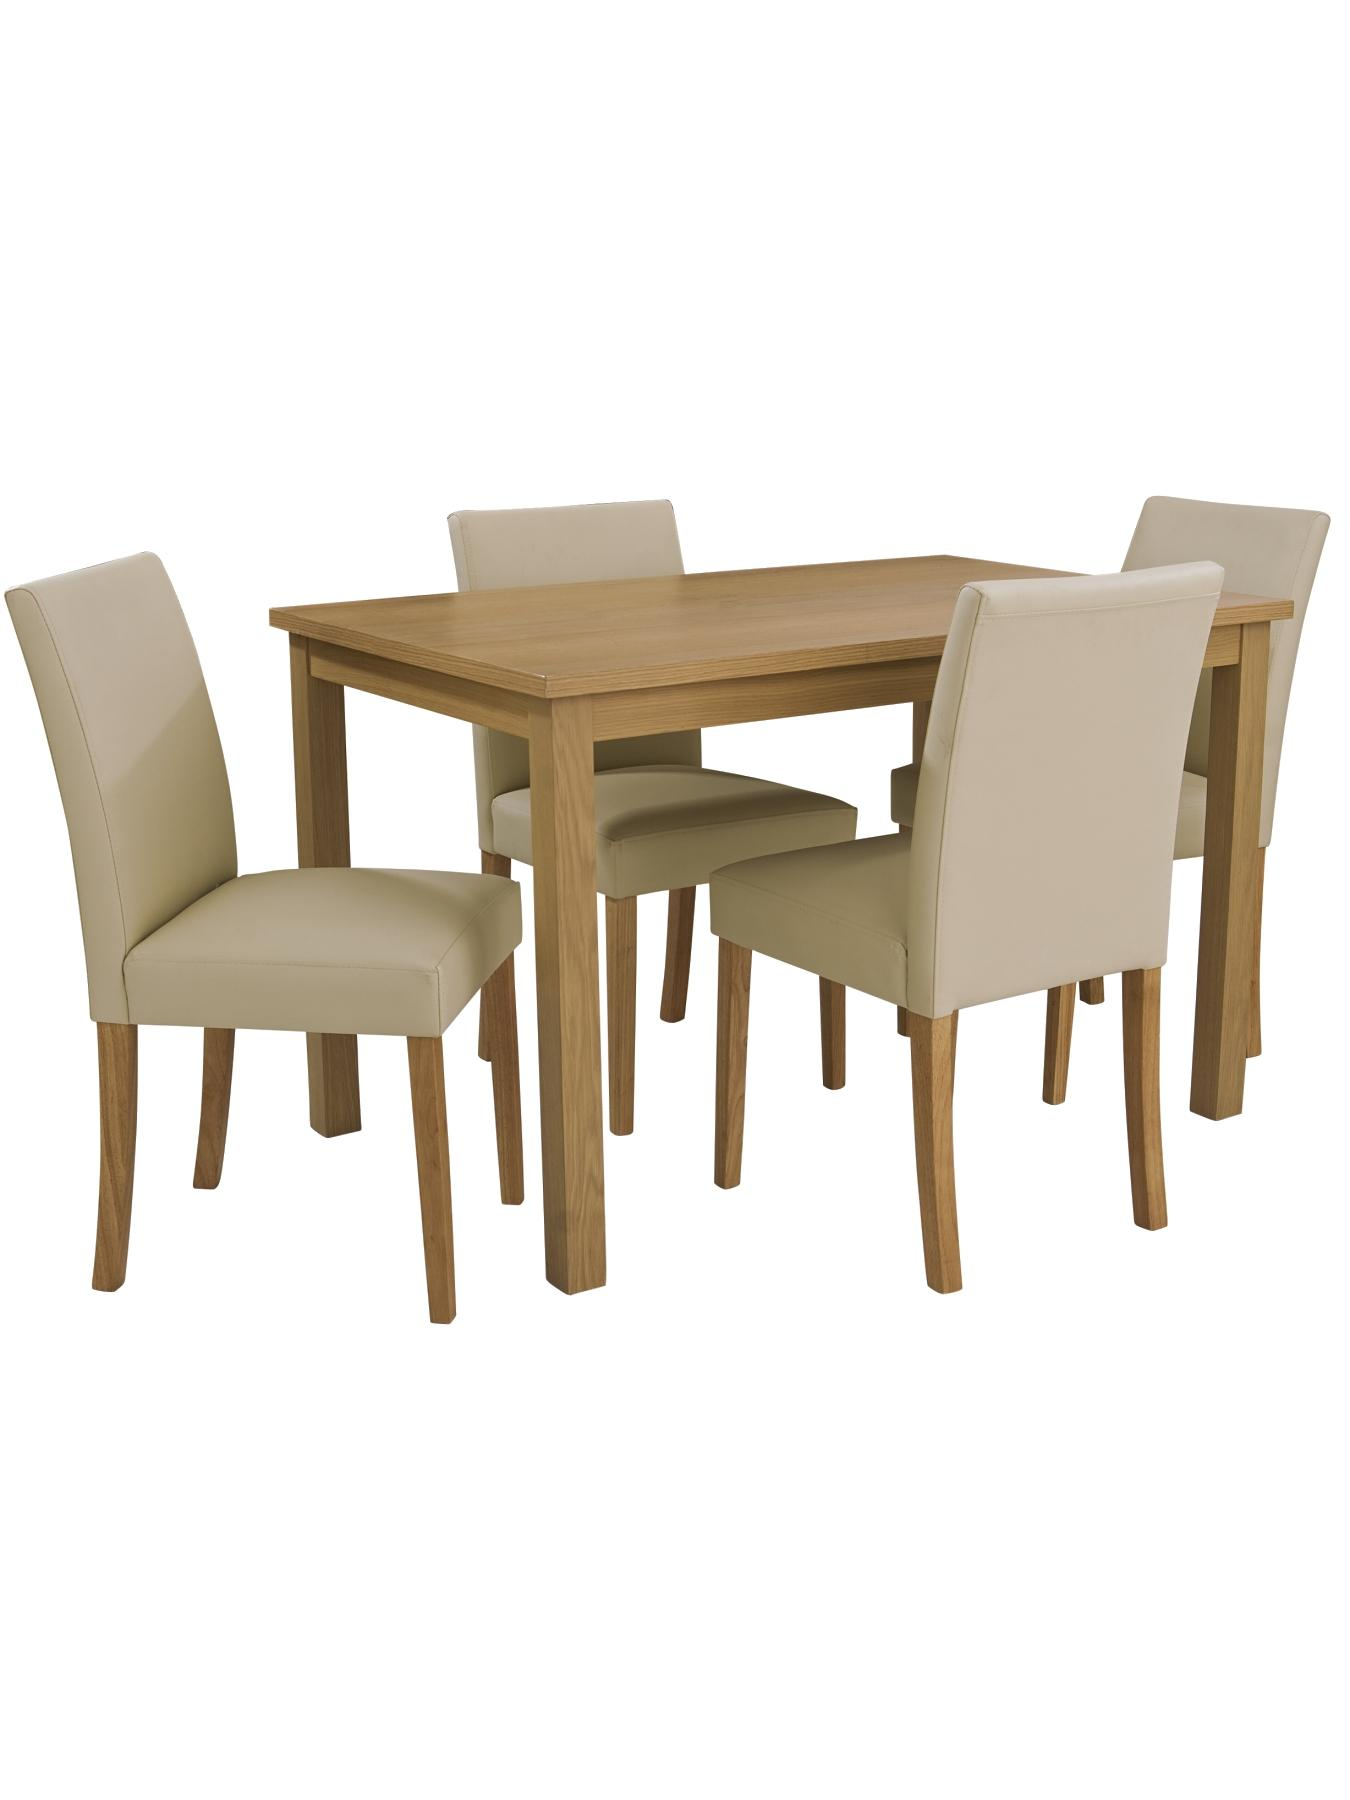 Modern Contemporary Dining Sets 2 modern